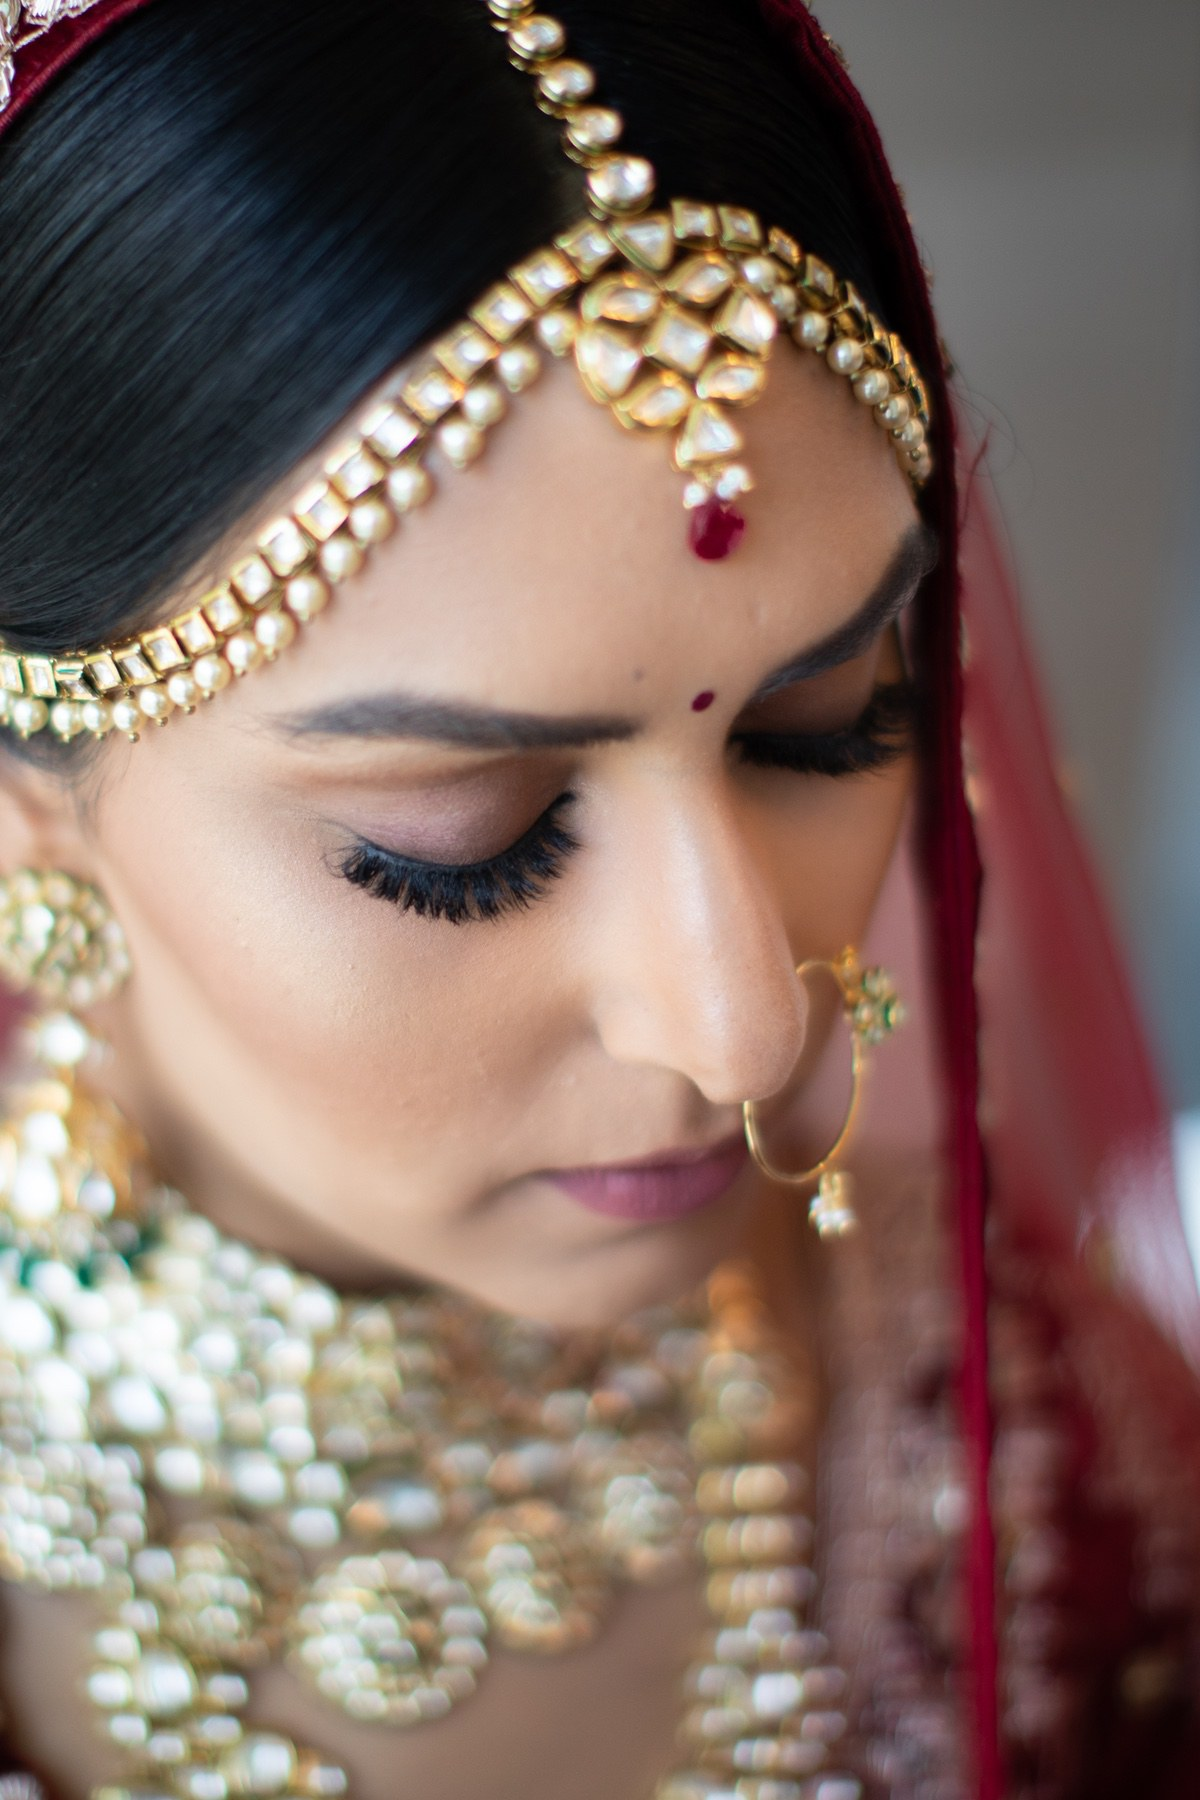 Le_Cape_Weddings_-_Serena_and_Kylash_-_Chicago_South_Asian_Wedding_-_Bride_Getting_Ready-63.jpg